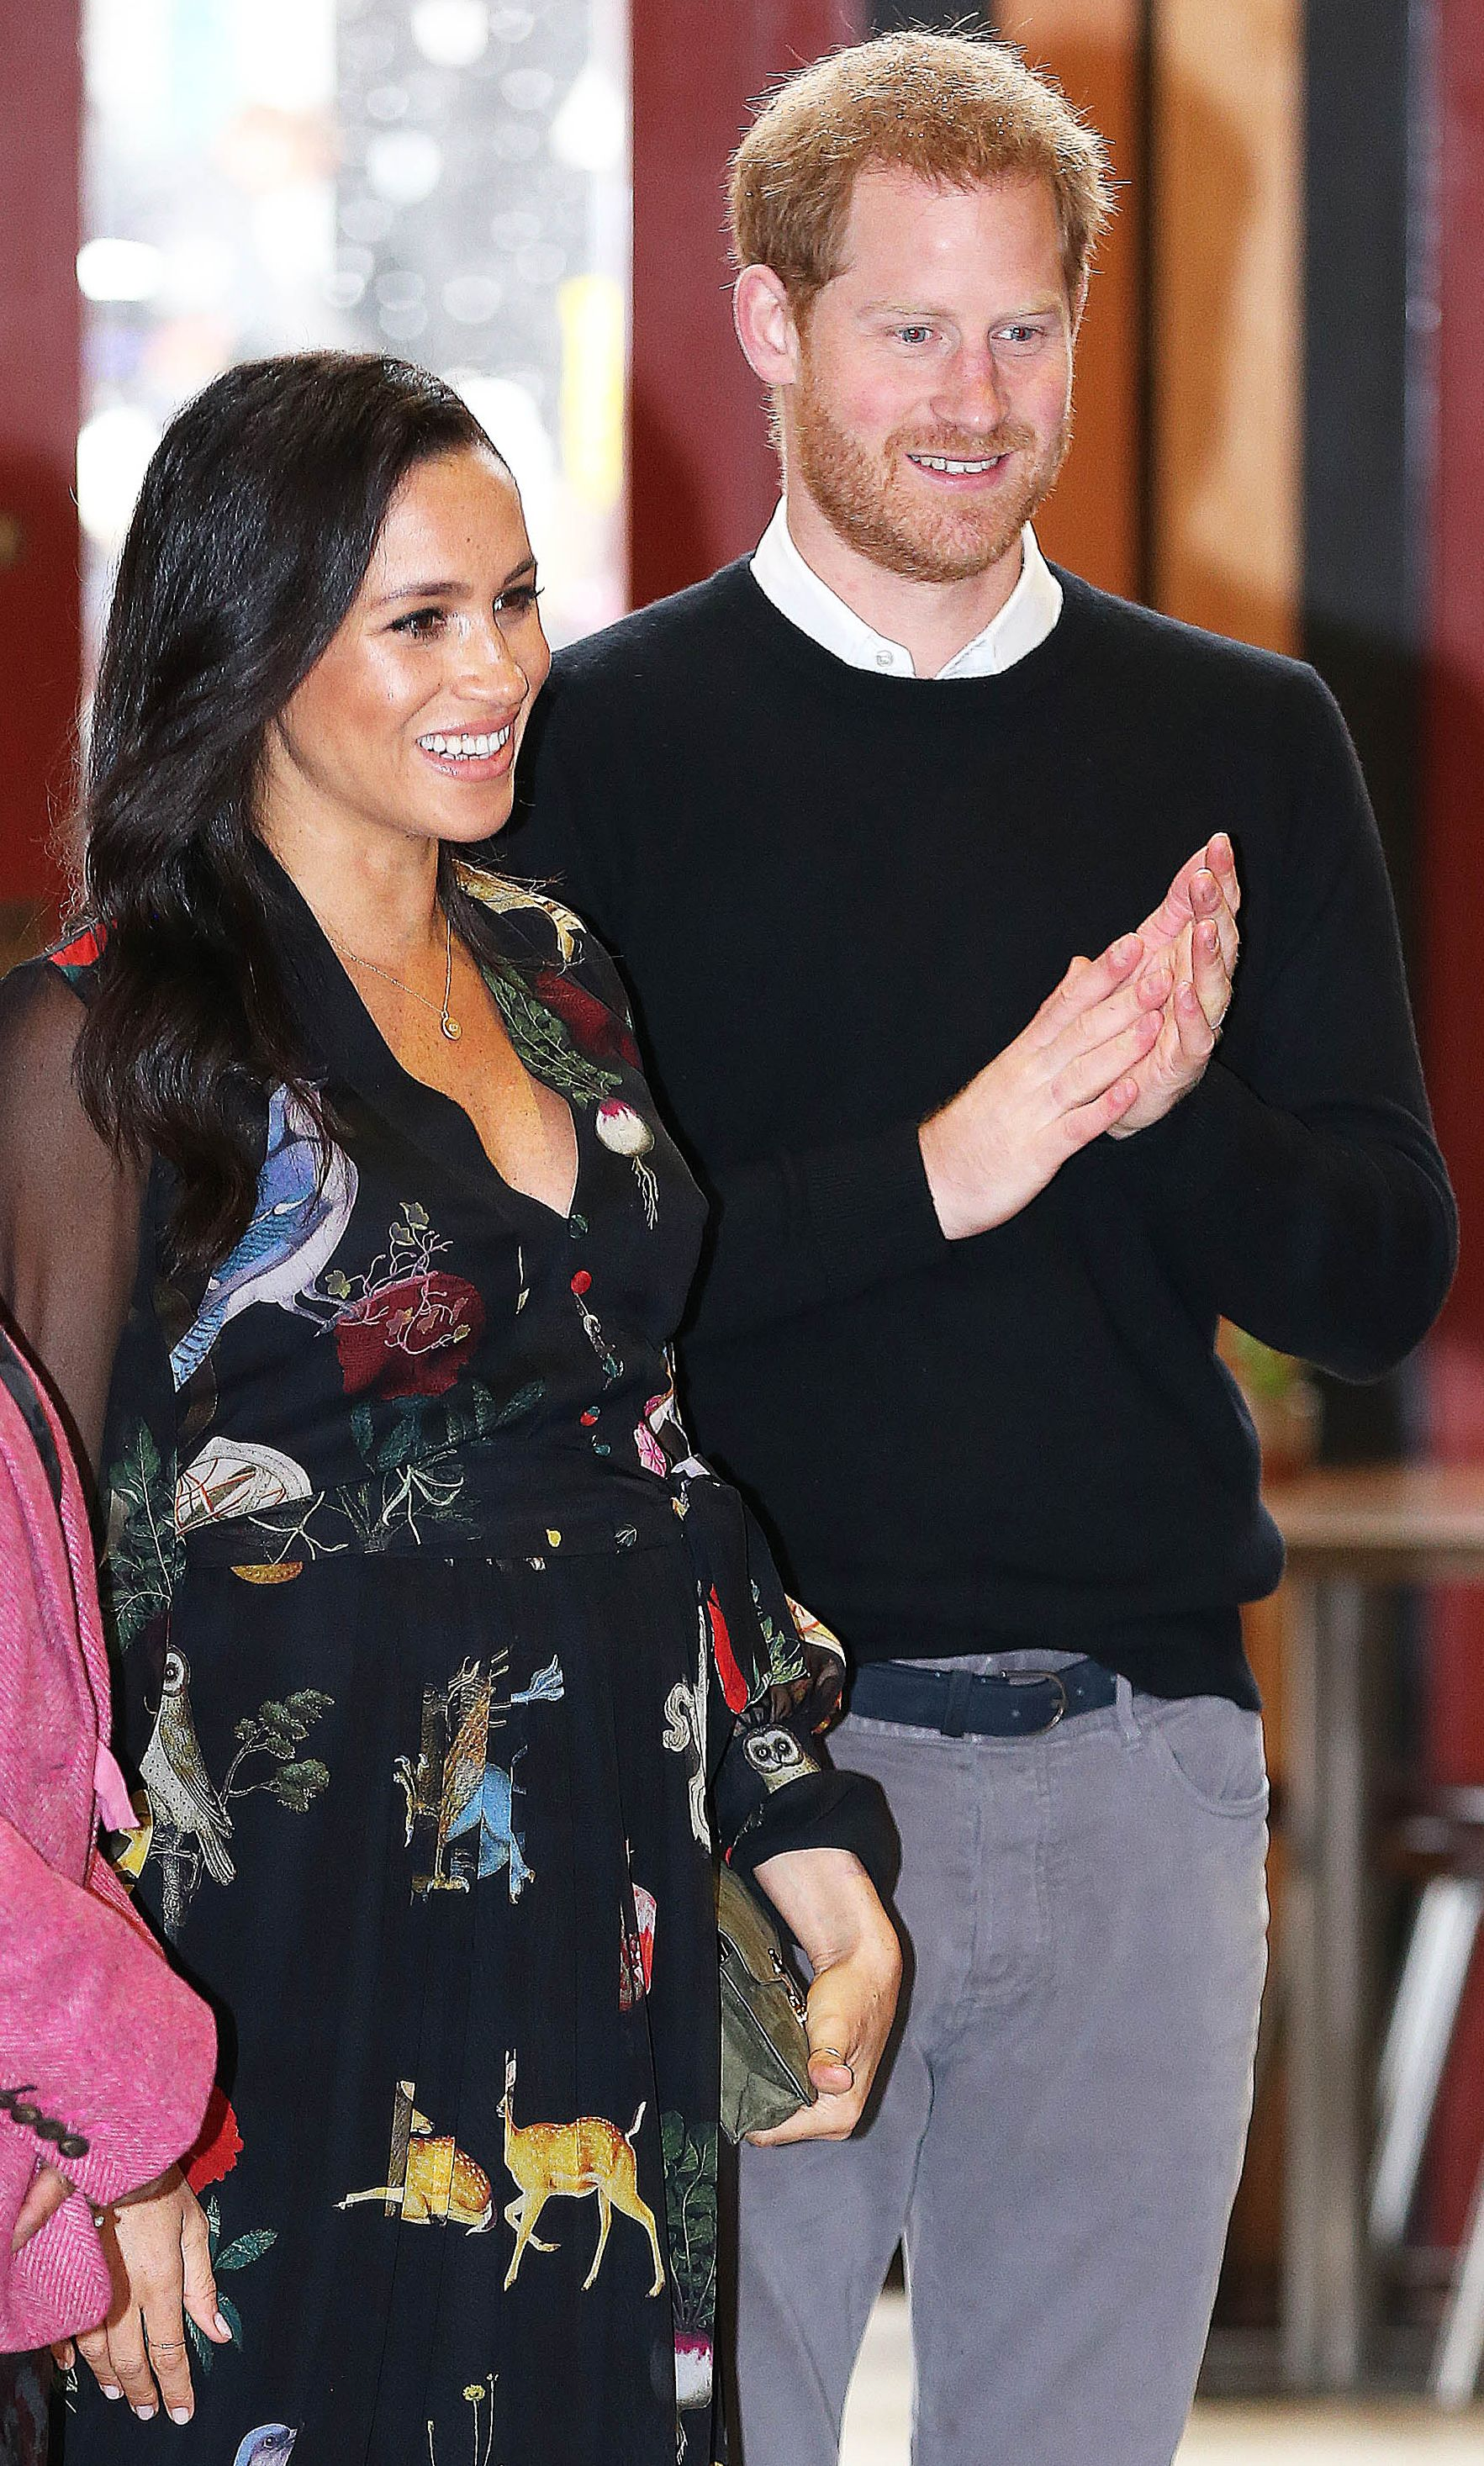 The Sussexes during a visit to the Bristol Old Vic Theatre, February, 2019. | Photo: Getty Images.